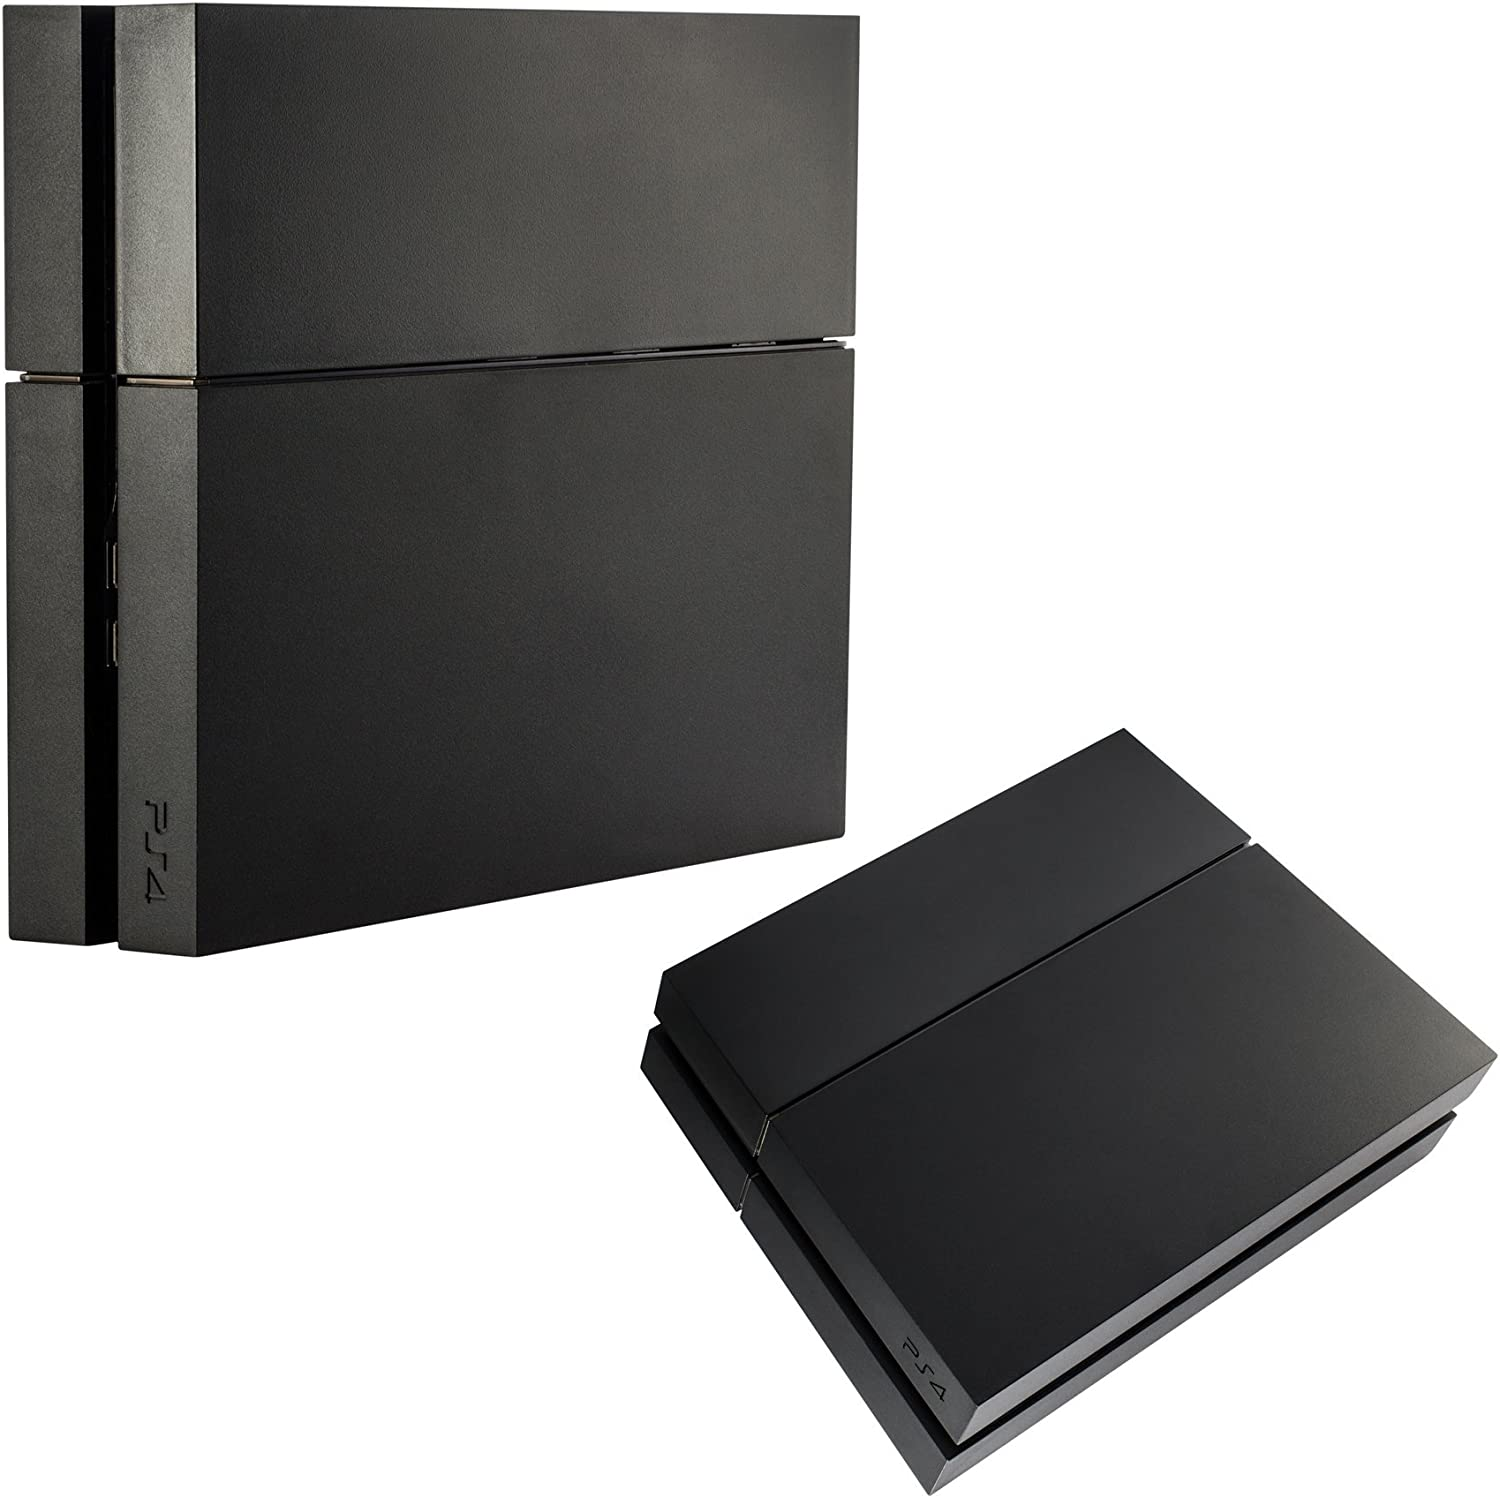 Amazon.com: extremerate Solid Negro Mate HDD Bay Hard Drive ...